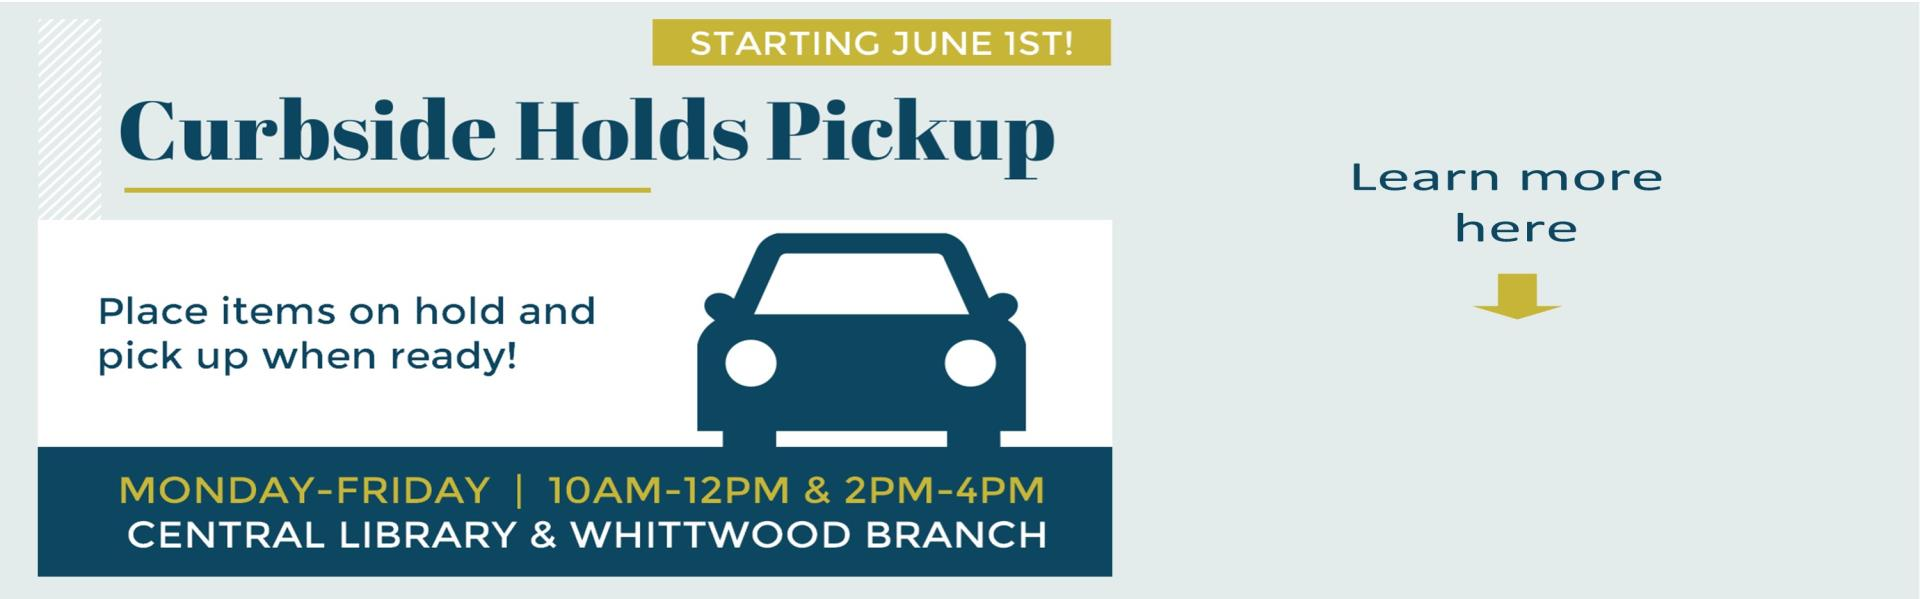 Curbside Holds Pick-Up Services, Place Items on hold with your library card and pick up when ready! Monday - Friday 10am-12pm & 2pm - 4pm beginning June 1st learn more here image of a car